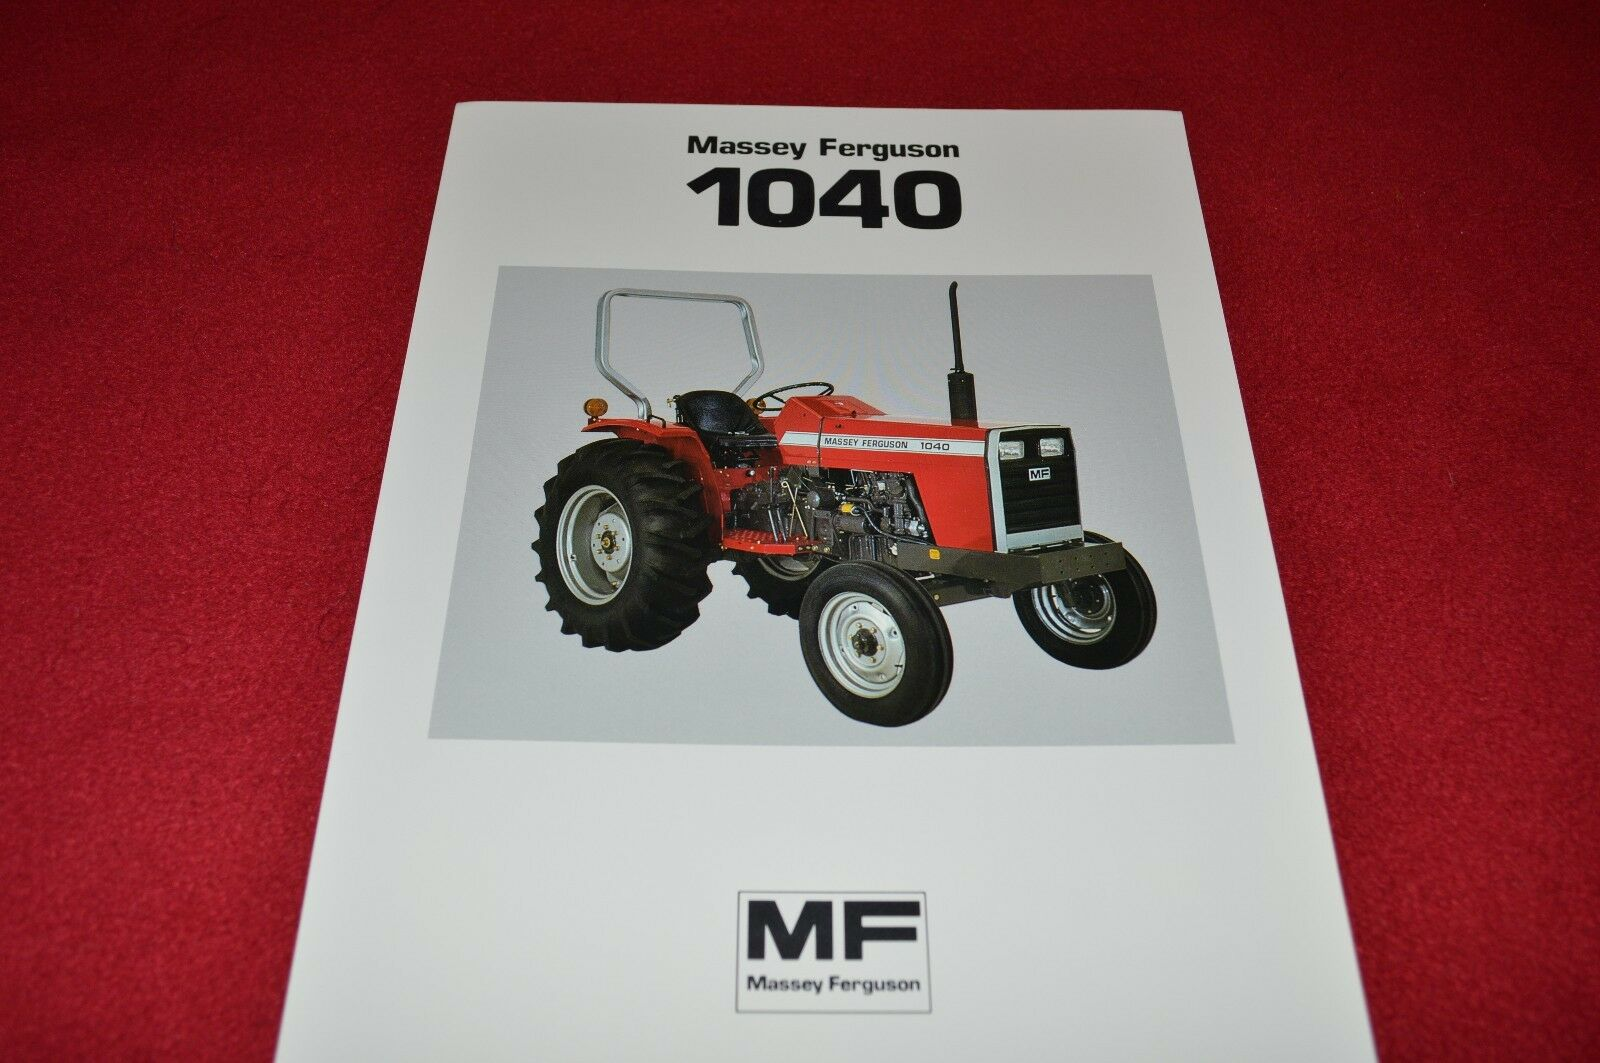 Massey Ferguson 1040 Tractor Dealer's Brochure LCOH 1 of 1FREE Shipping ...